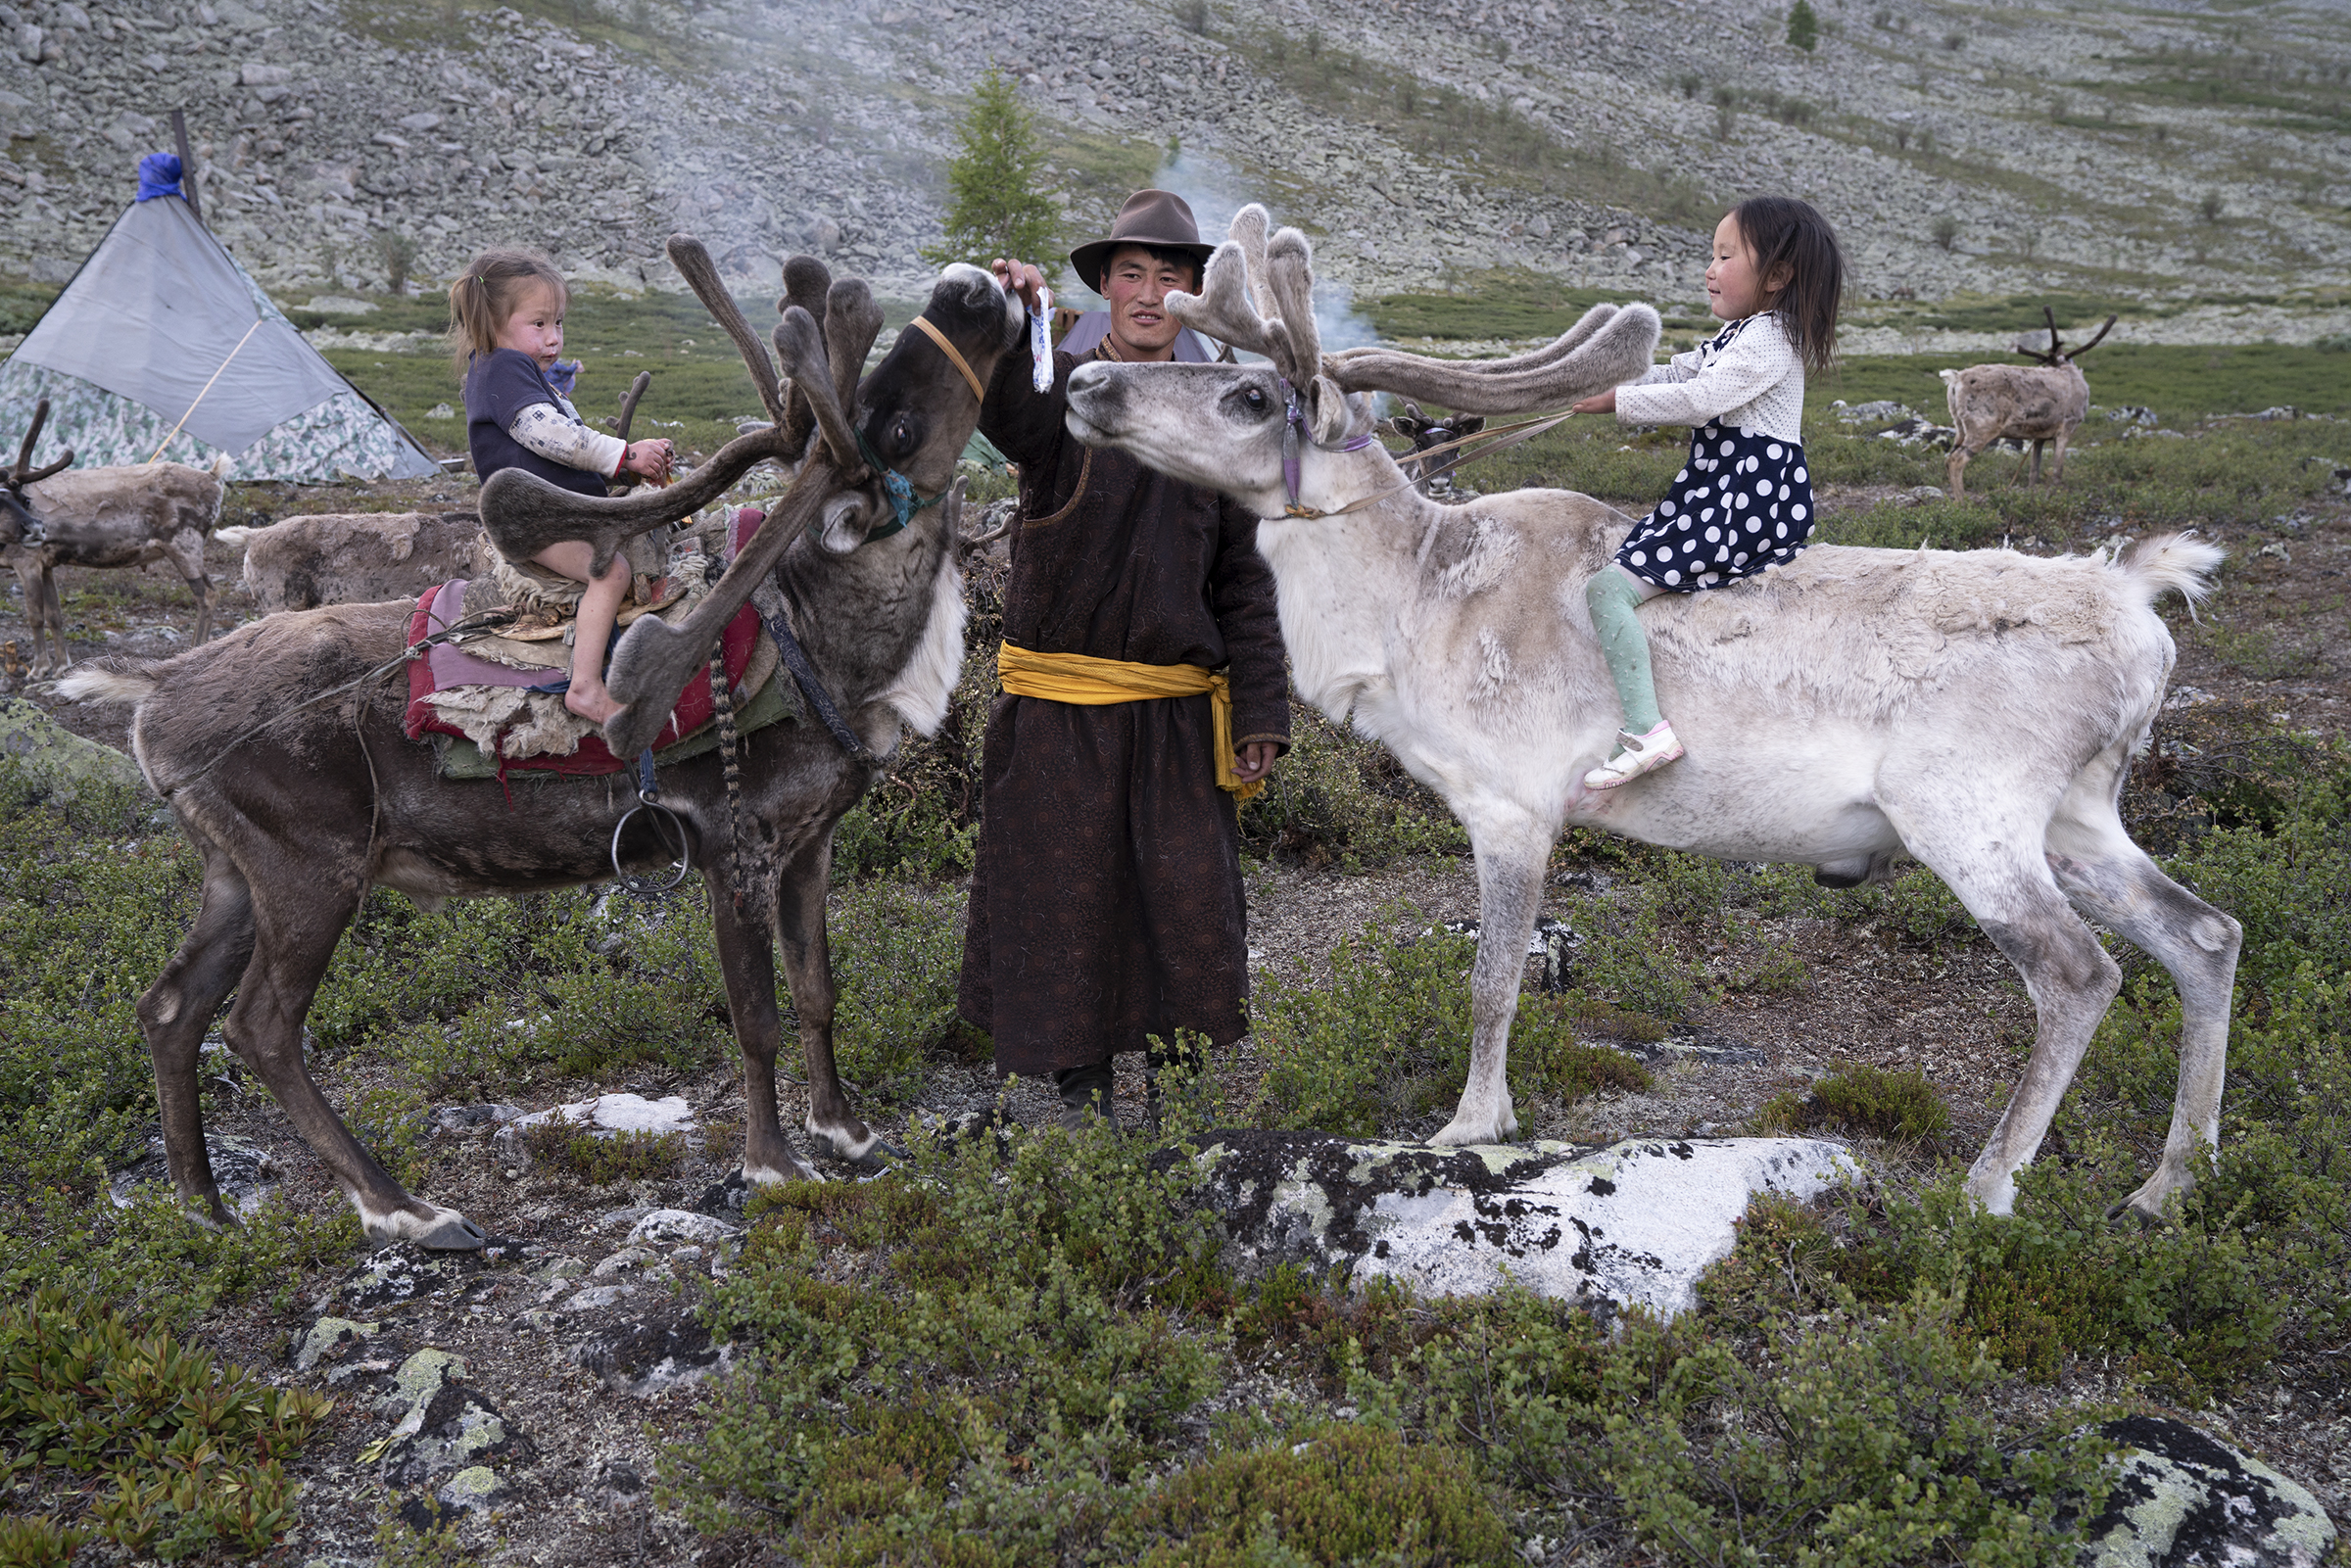 Ganbat was a man in love with his two children, Emujiin and Temujin and way of life. Here he is offering a salt lick to the reindeer. © Meghan Boody